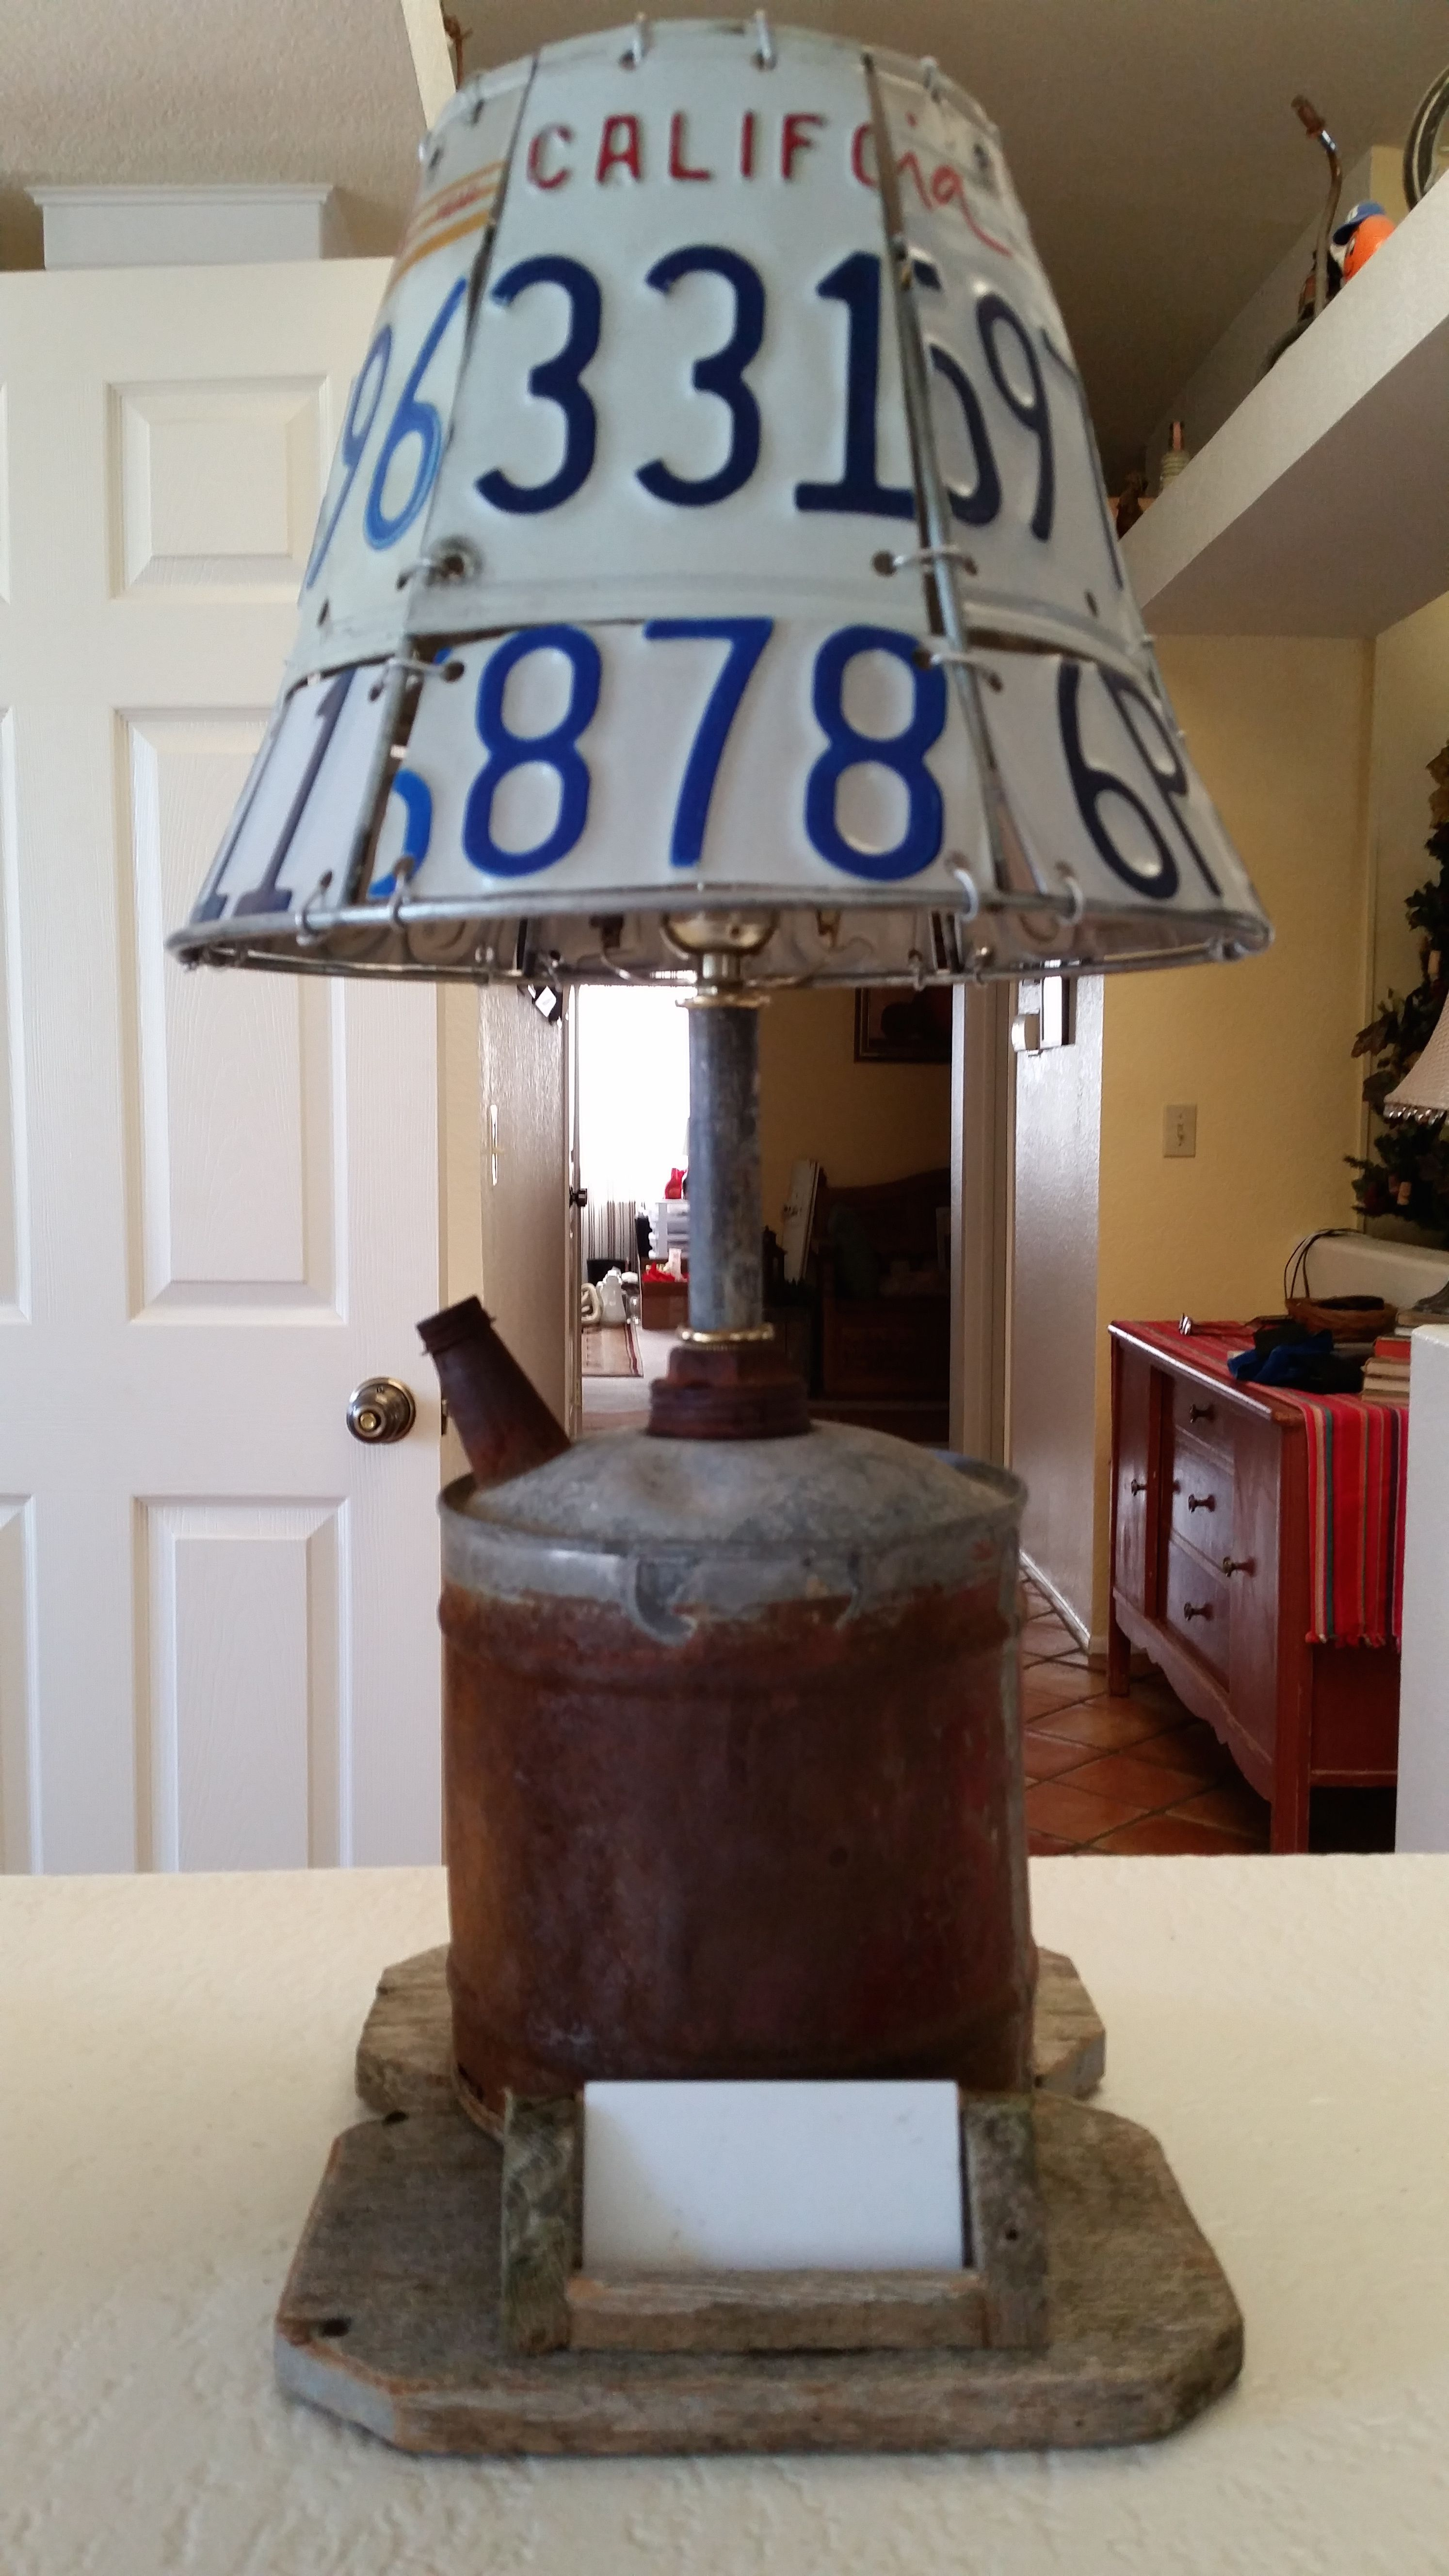 Fuel can desk lamp with license plate lamp shade and